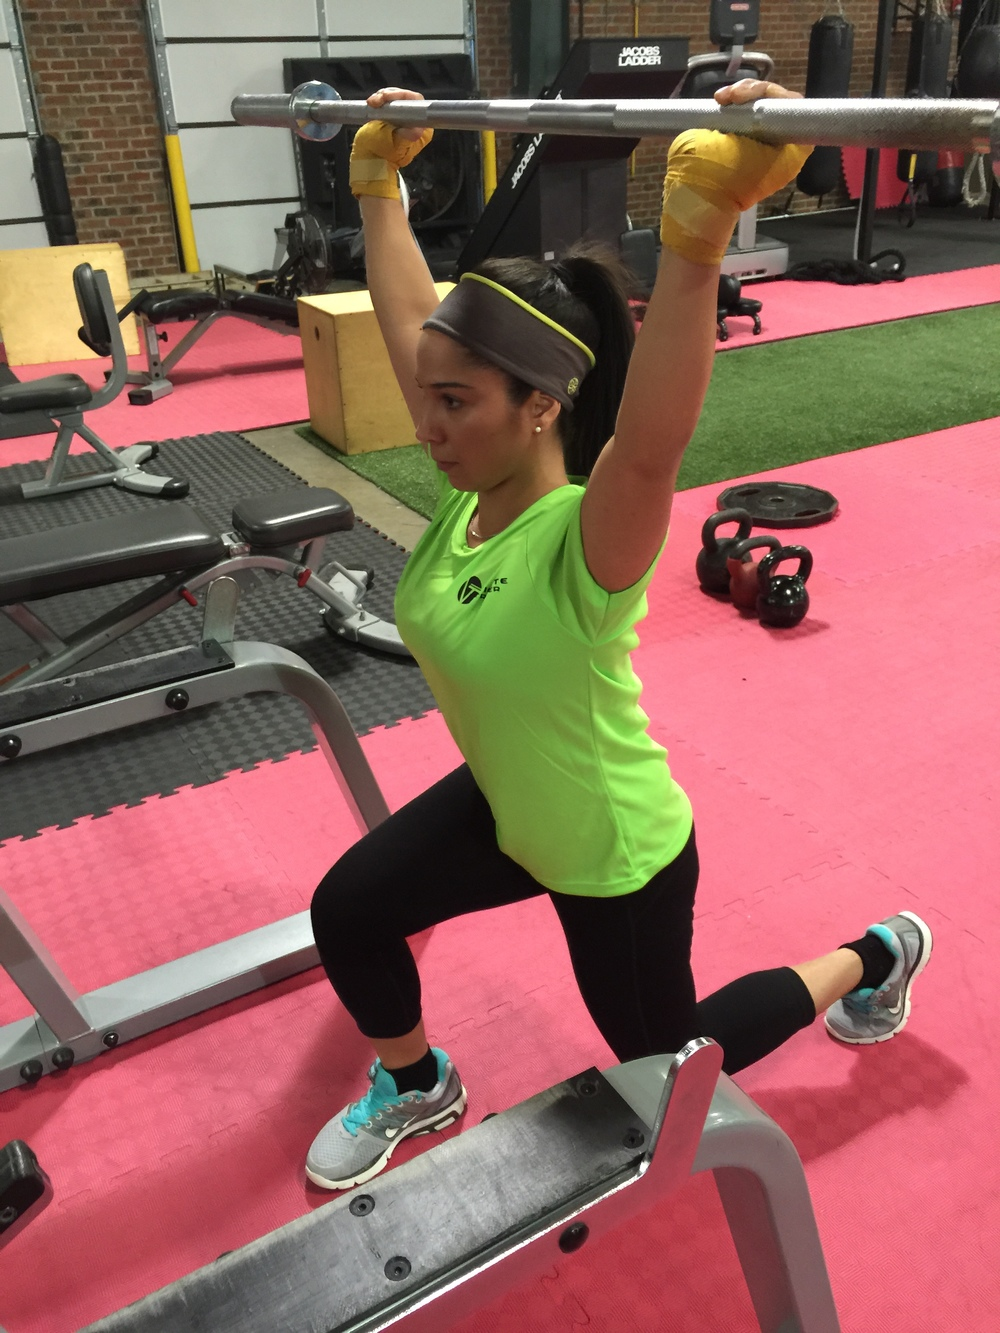 Personal Training experts in North Carolina